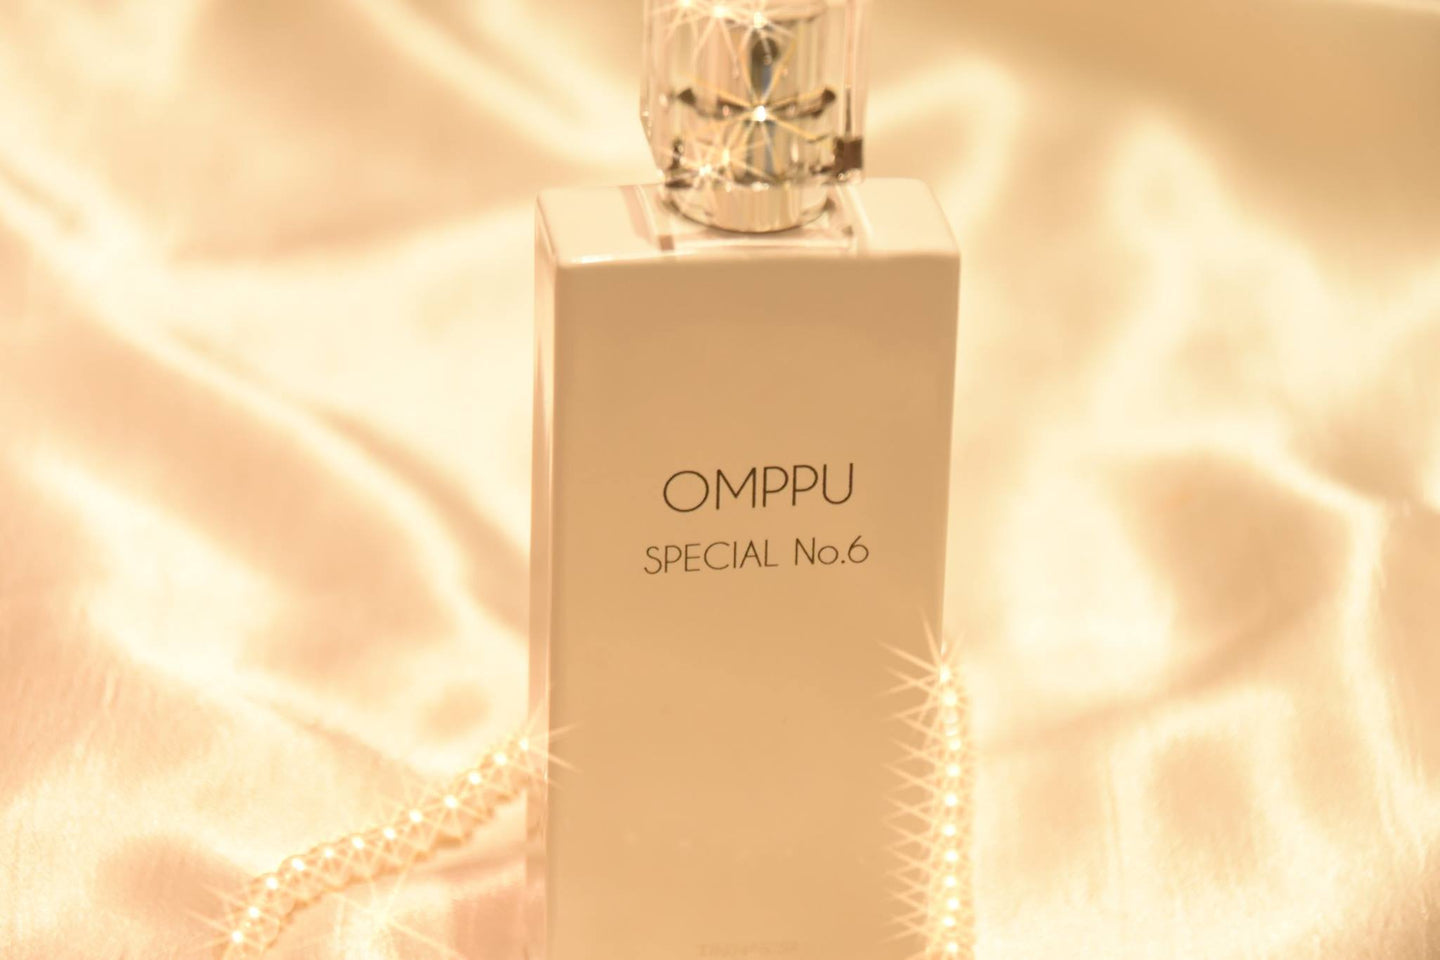 Omppu Special No.6 EdP 50 ml